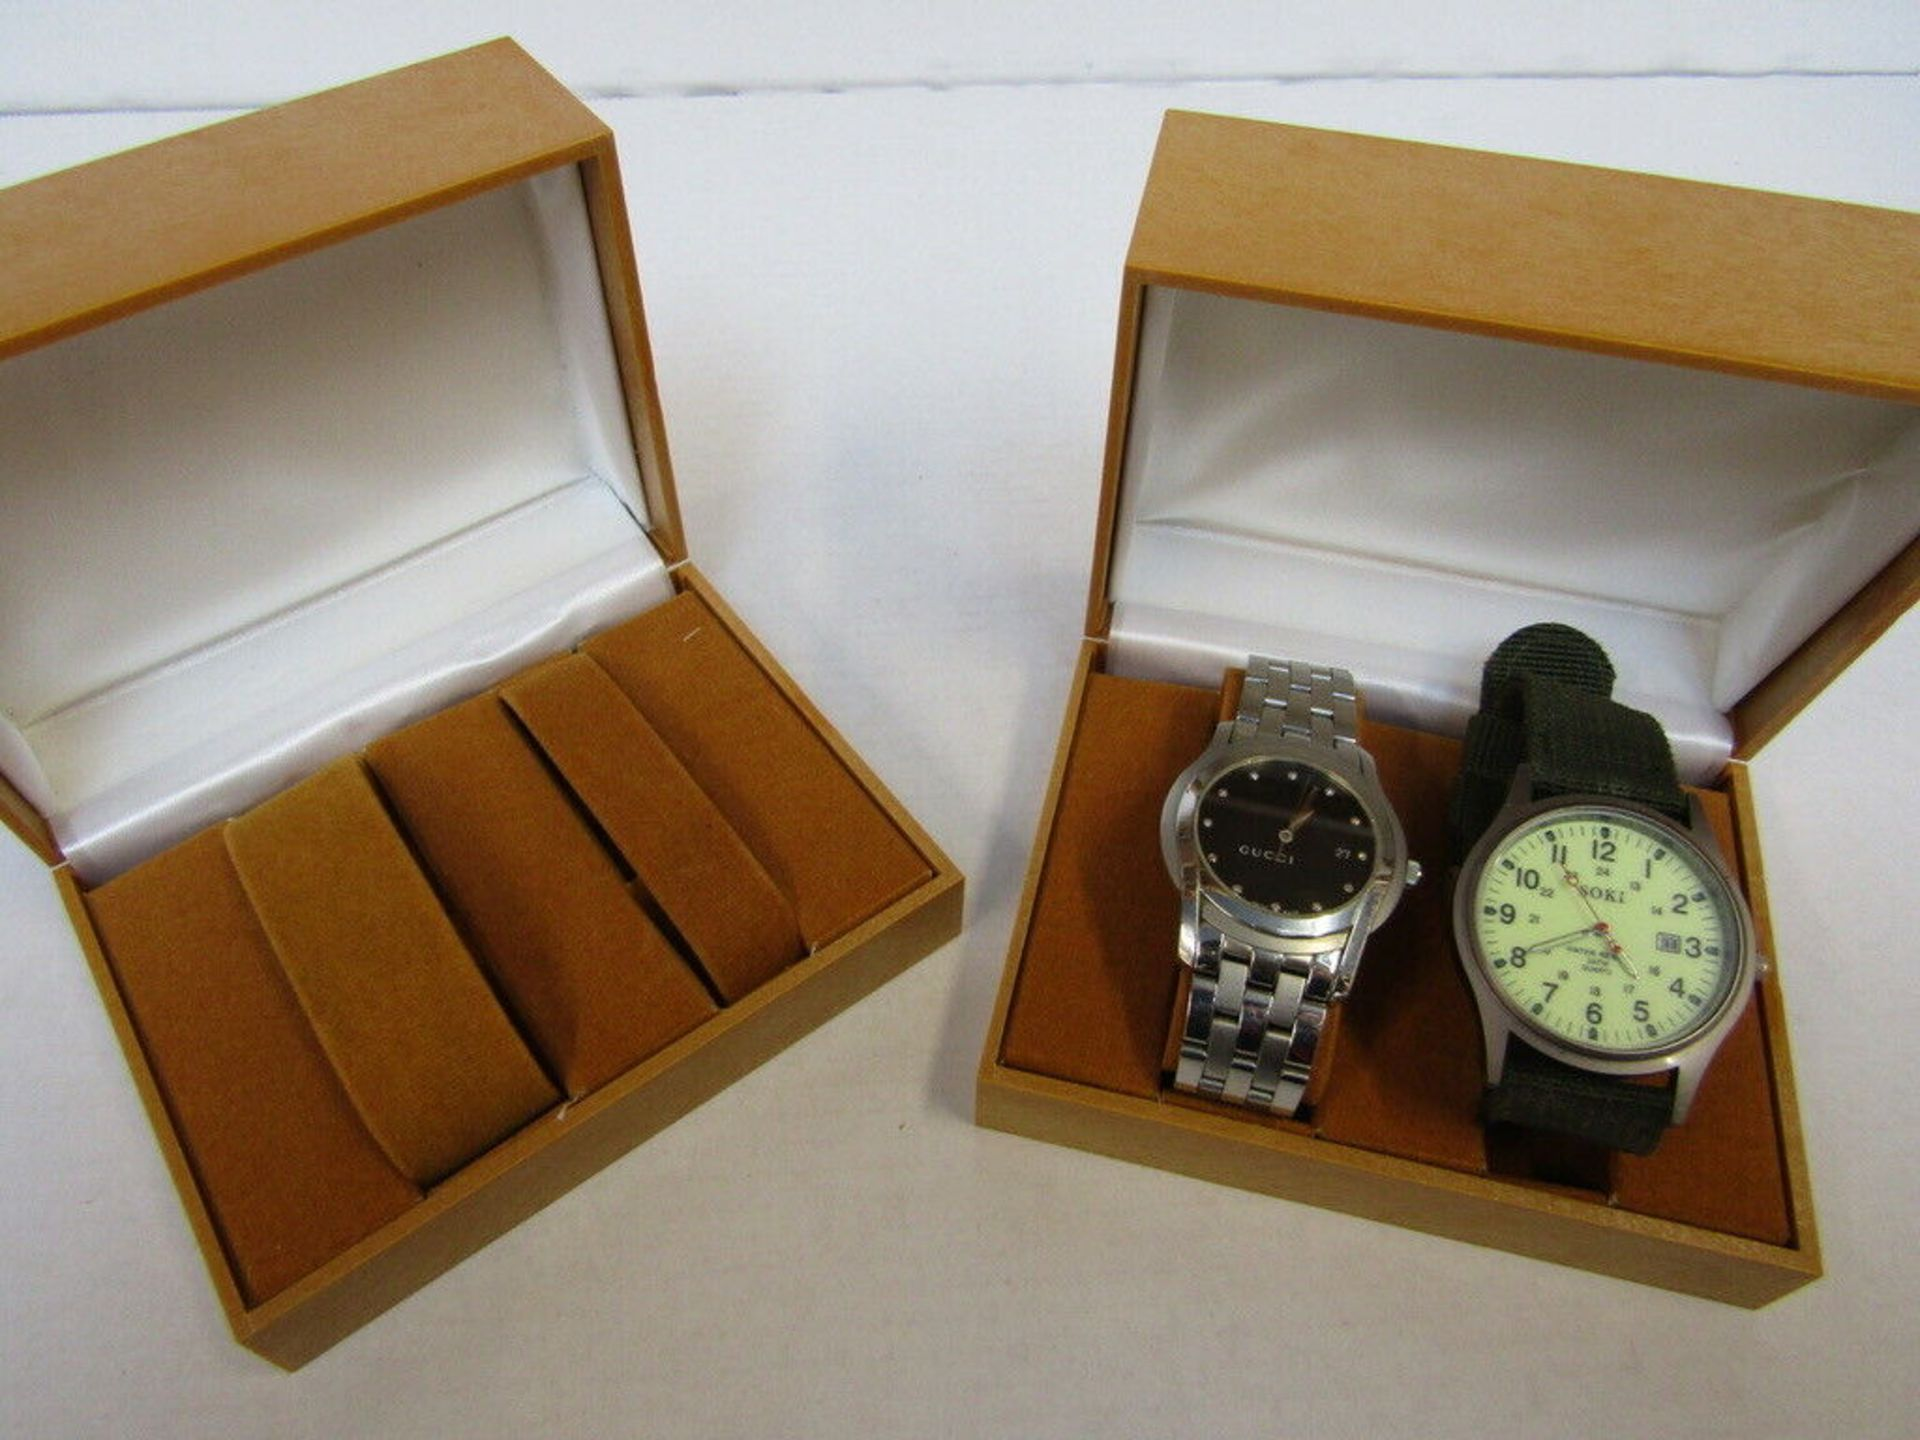 Lot 59 - 20 x Watch & Jewellery Box.no vat on hammer.You will get 20 of these.Please note, the watches in